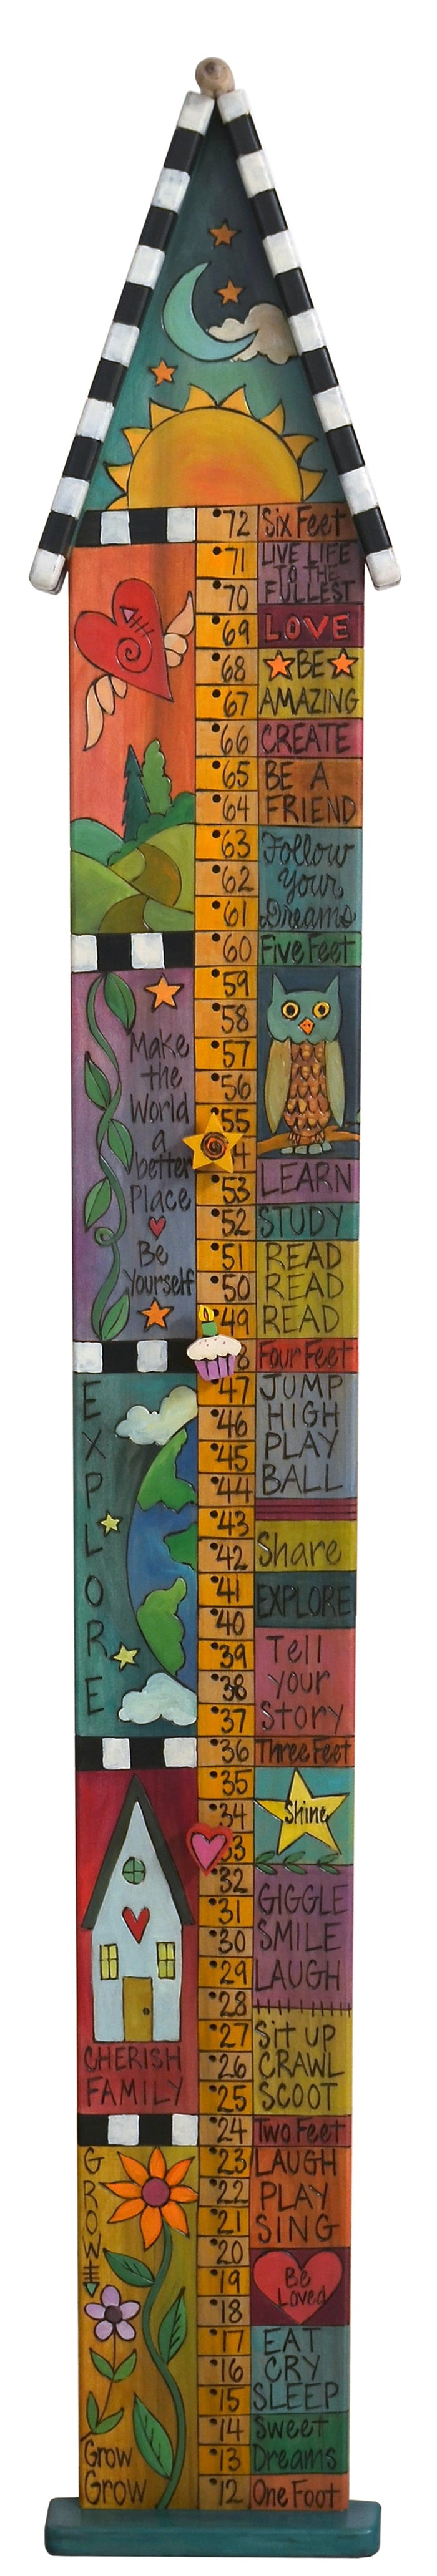 Growth Chart with Pegs